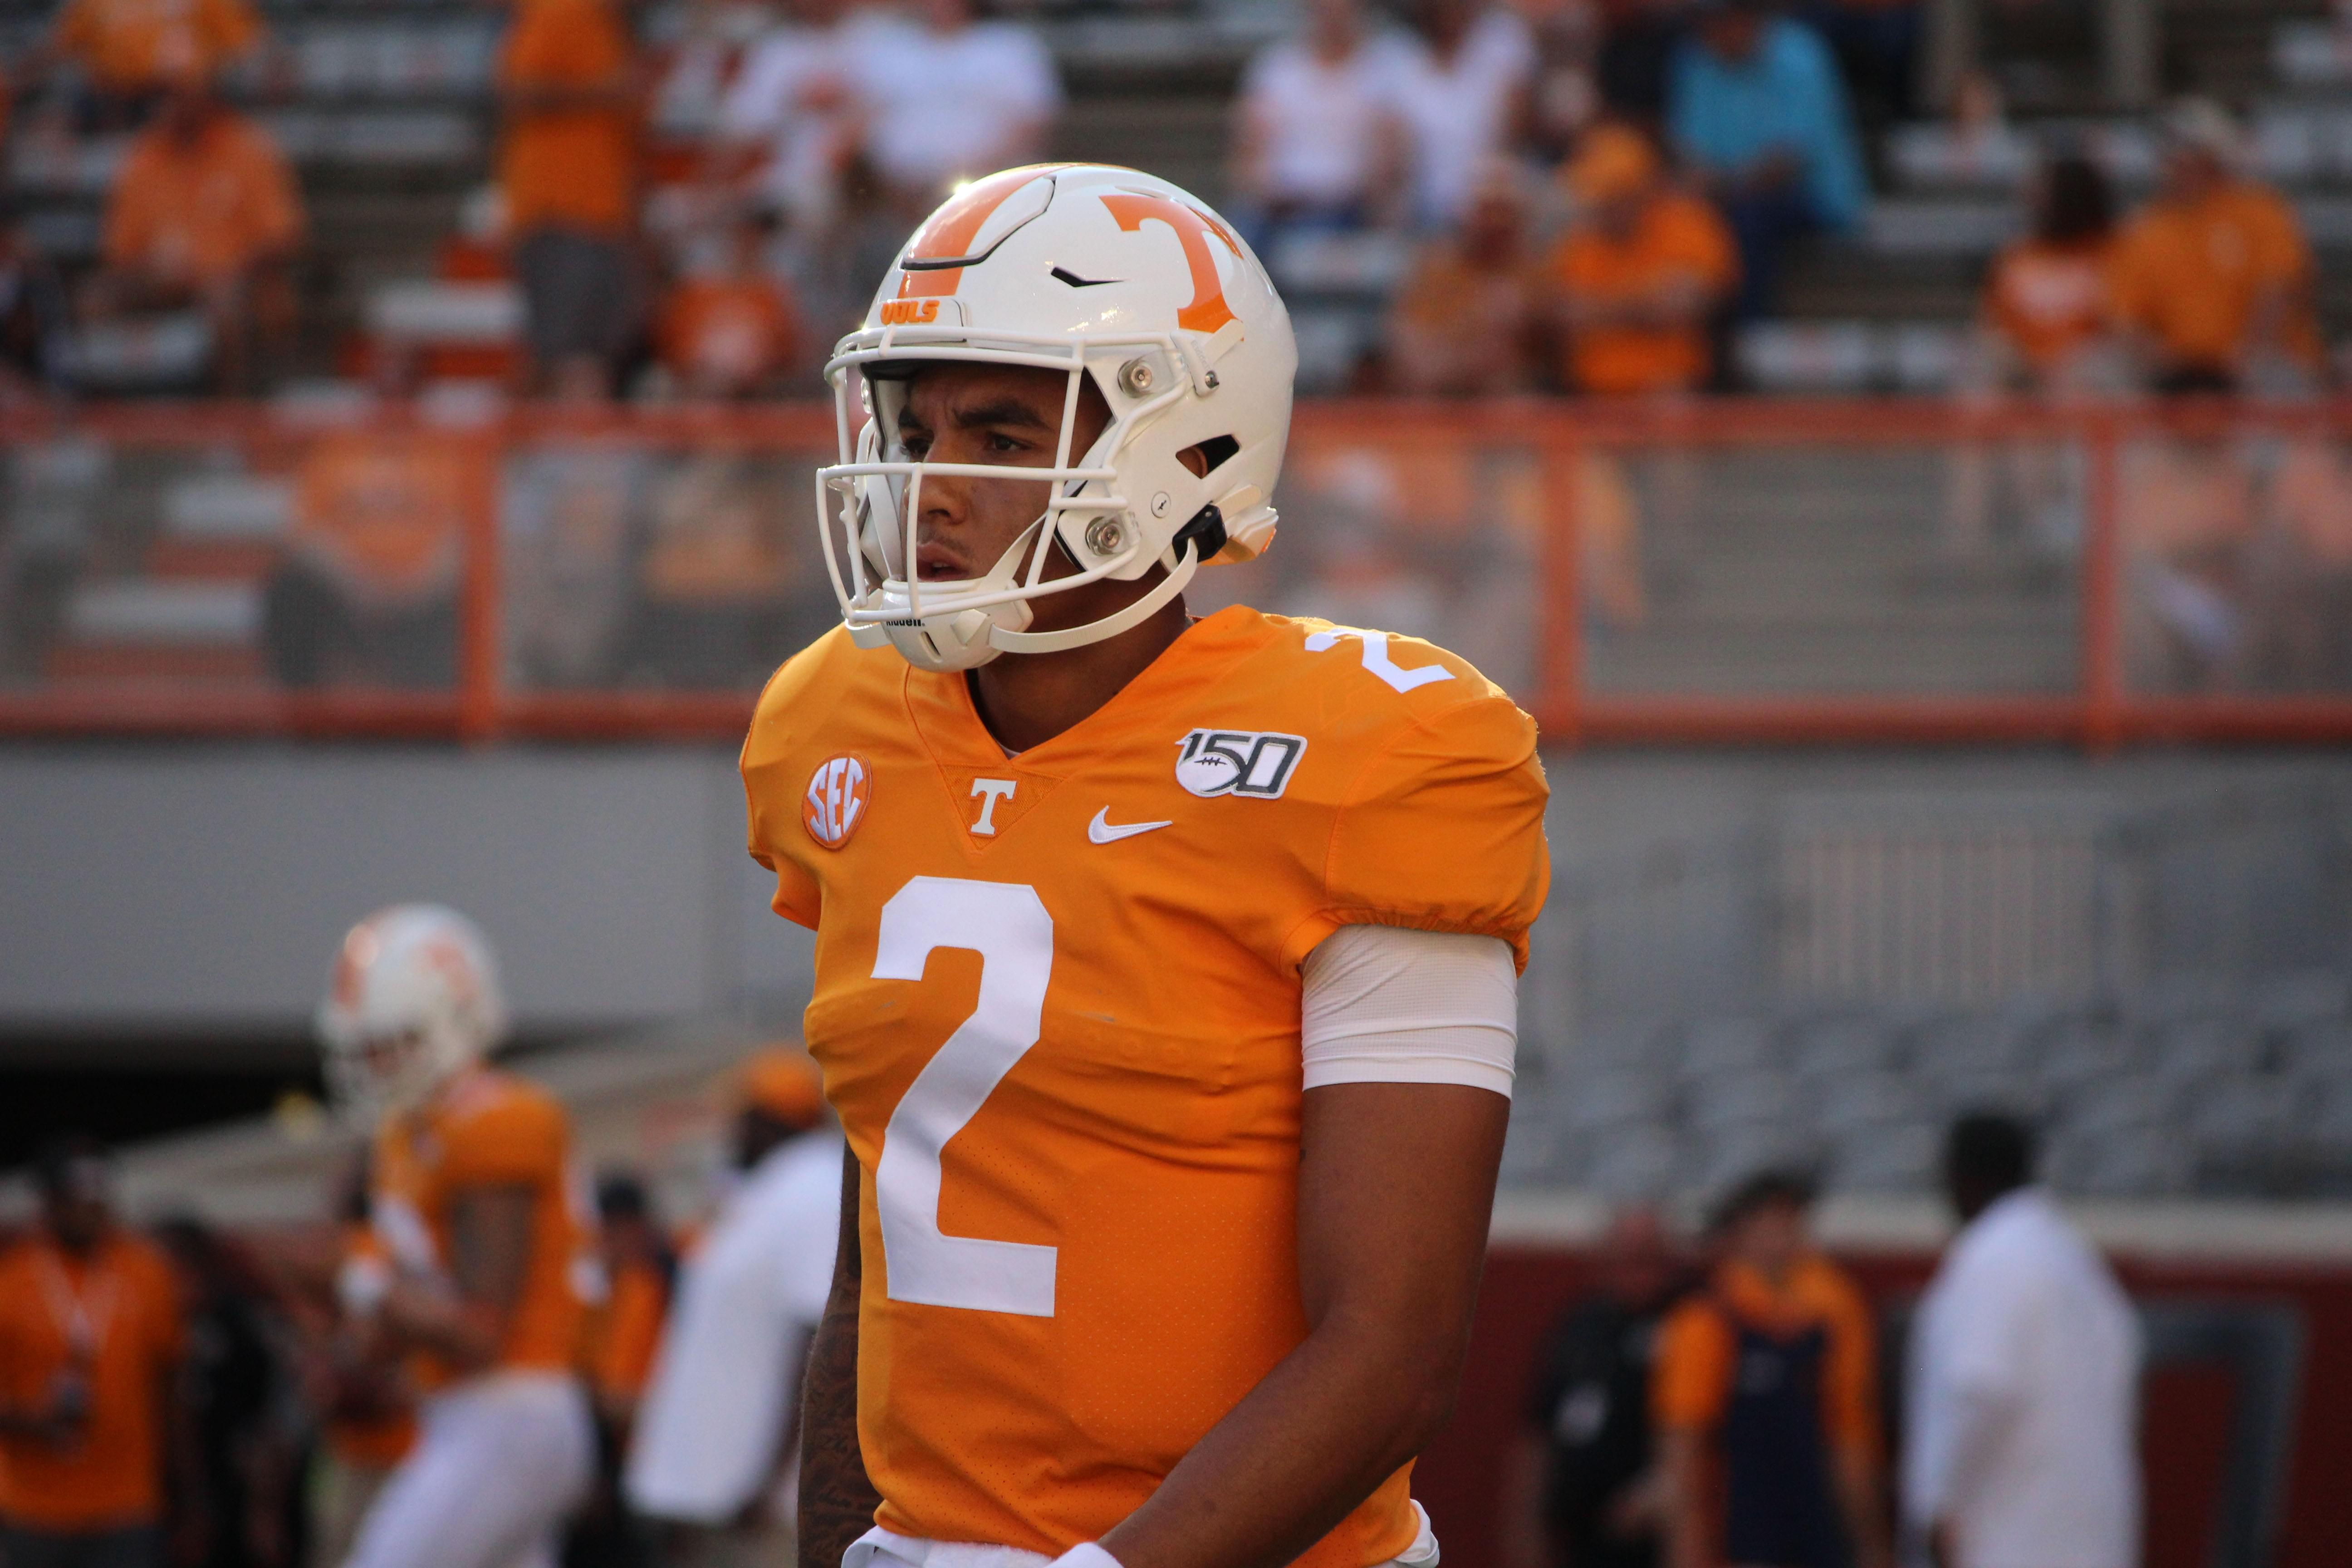 Silverberg: Guarantano's lows outweigh the highs